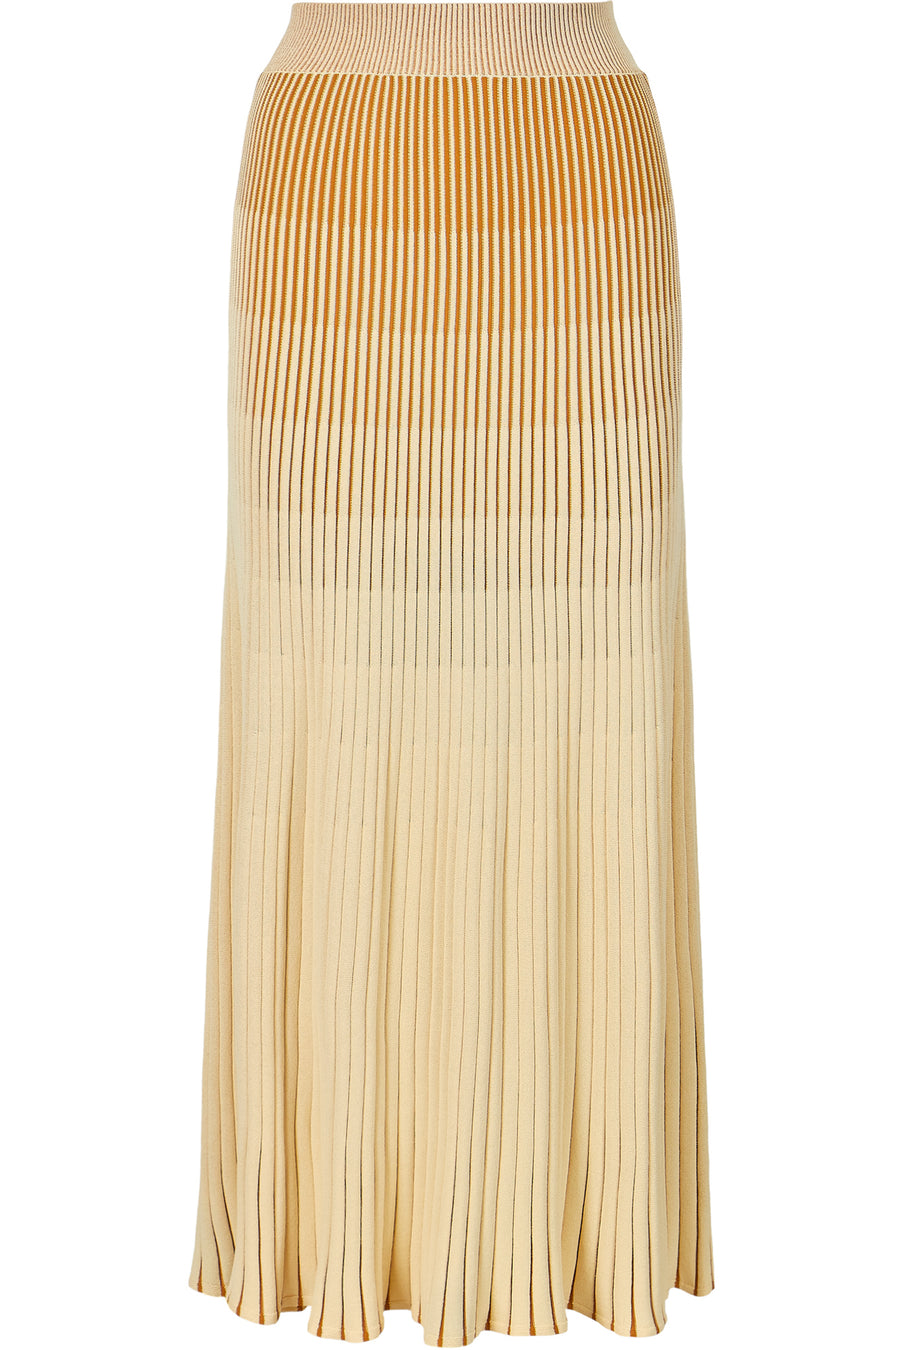 Knit Pleated Skirt - Nude Multi